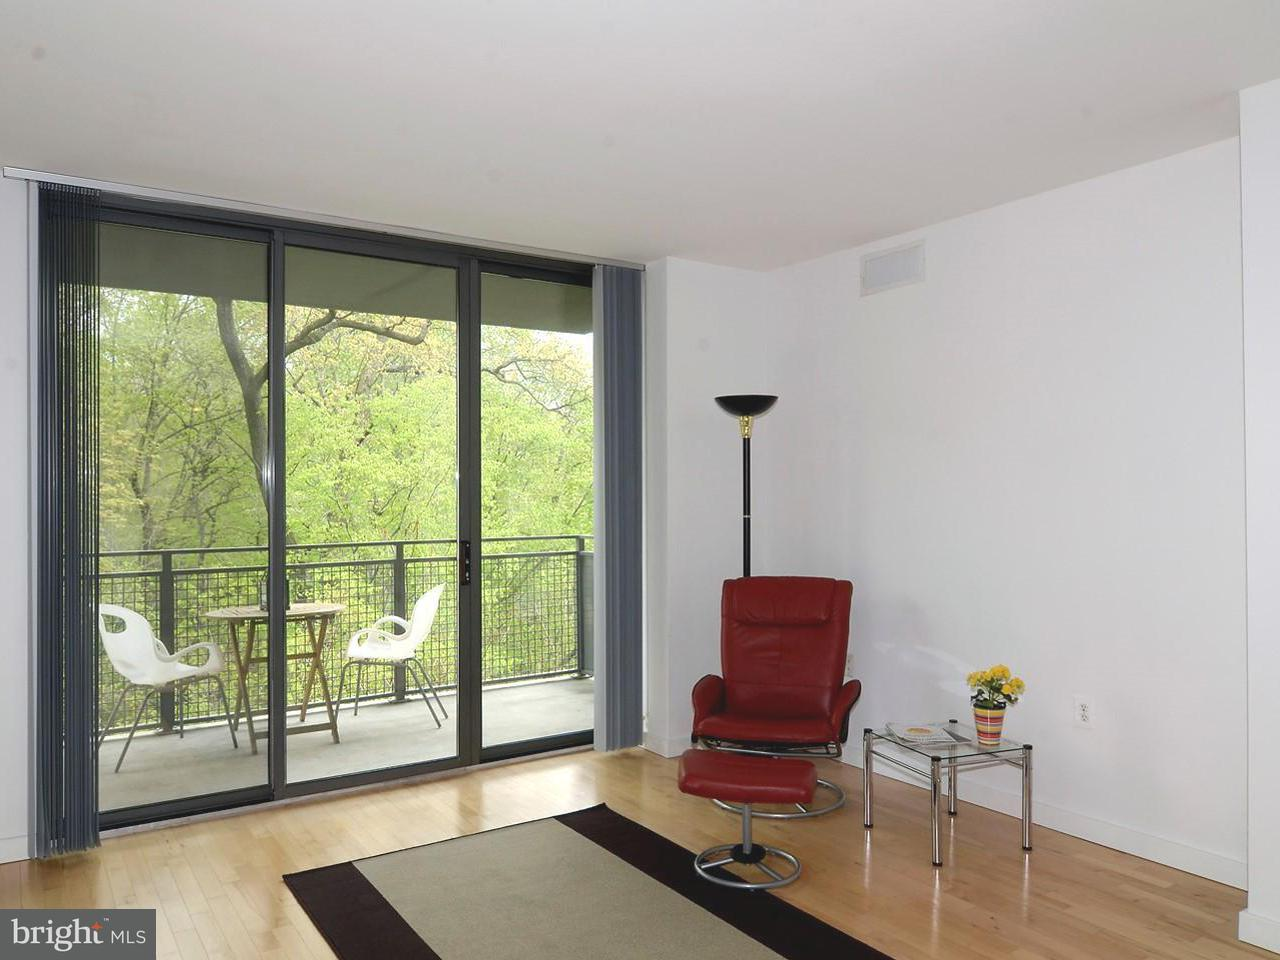 Condominium for Rent at 3883 Connecticut Ave NW #213 Washington, District Of Columbia 20008 United States